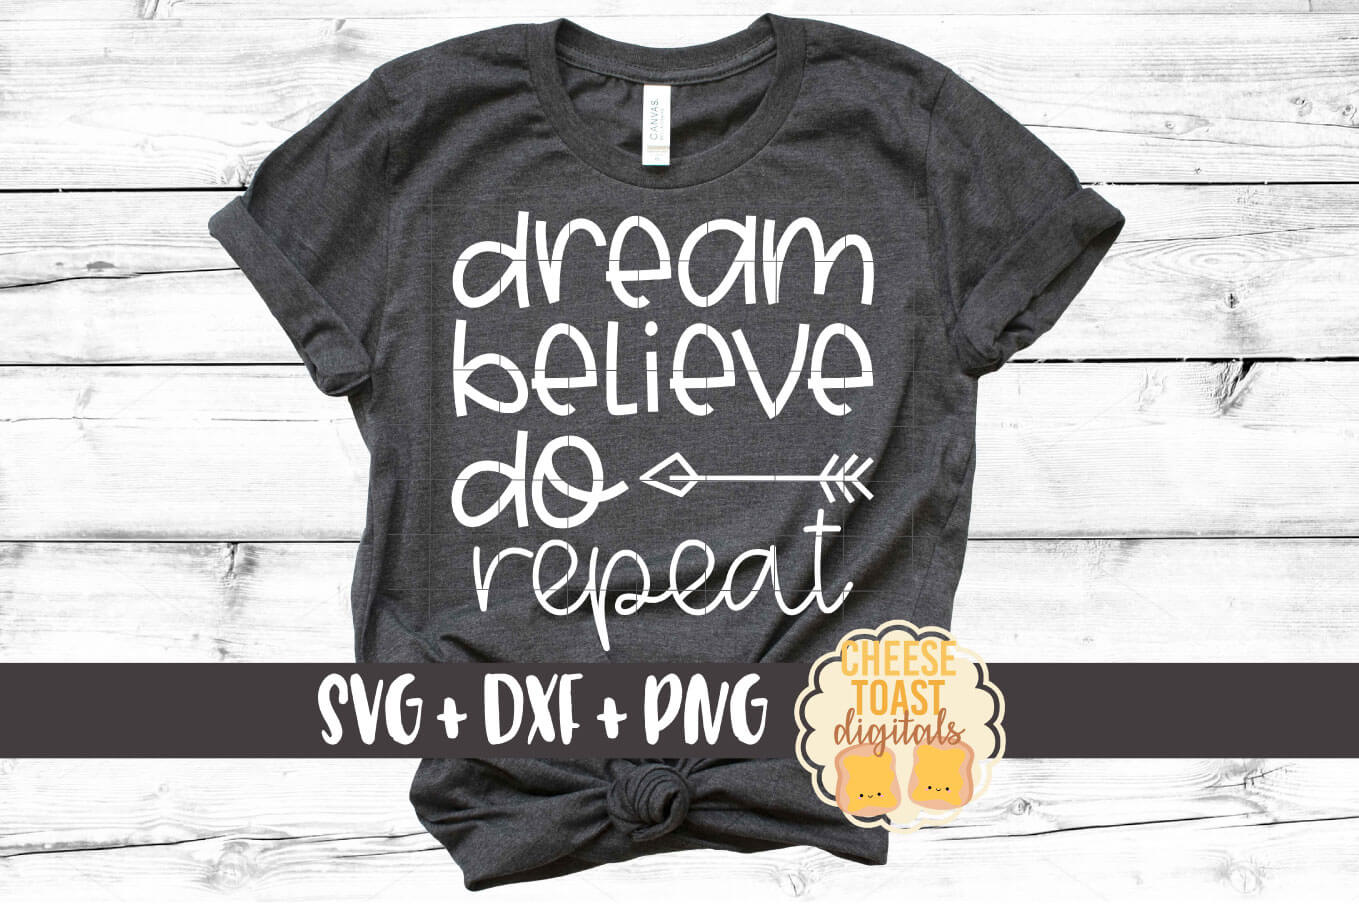 Dream Believe Do Repeat - Motivational SVG PNG DXF Files example image 1